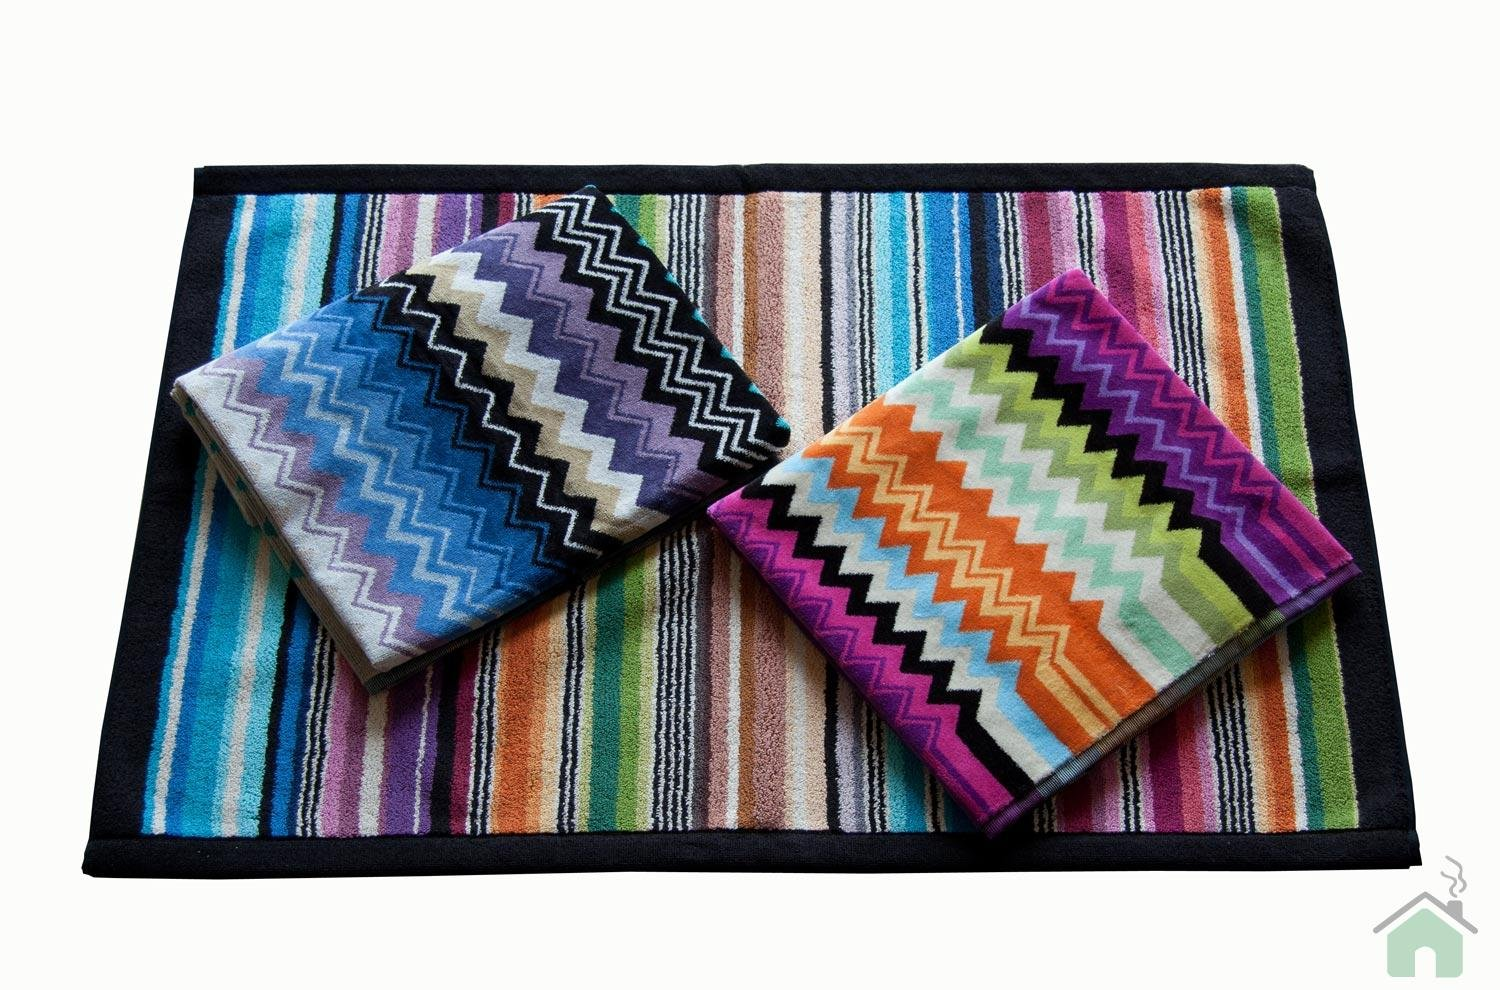 2 towels set 1+1 Missoni Giacomo 156-170 + Missoni Hill bathmat